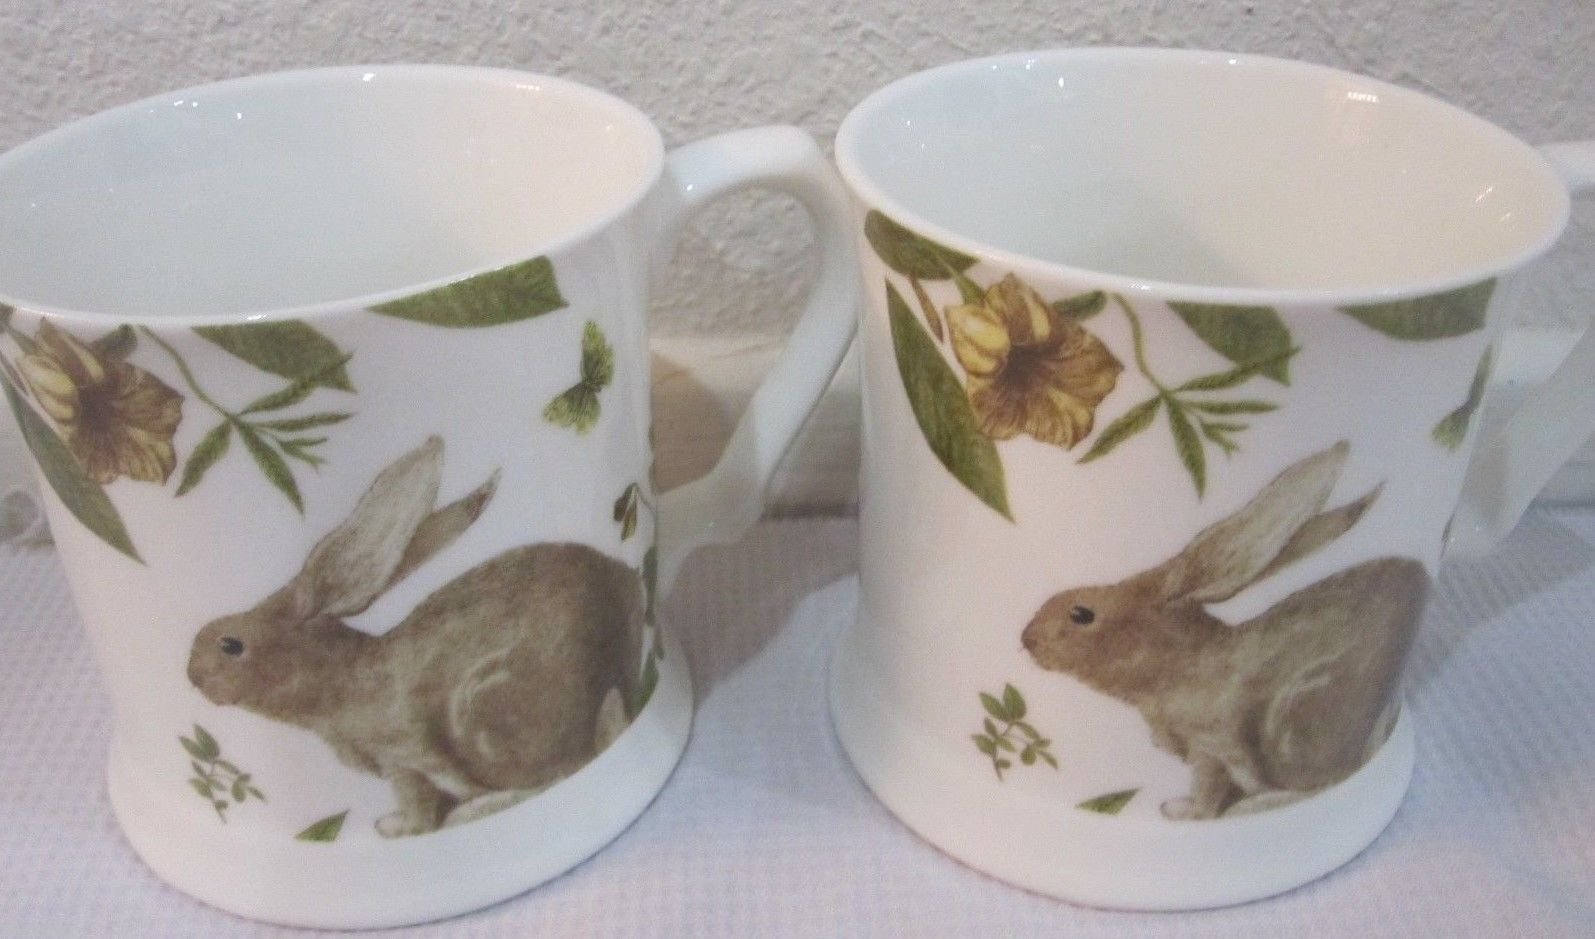 Primary image for GRACE TEA WARE EASTER BUNNY RABBIT COFFEE CUPS MUGS SET OF 2